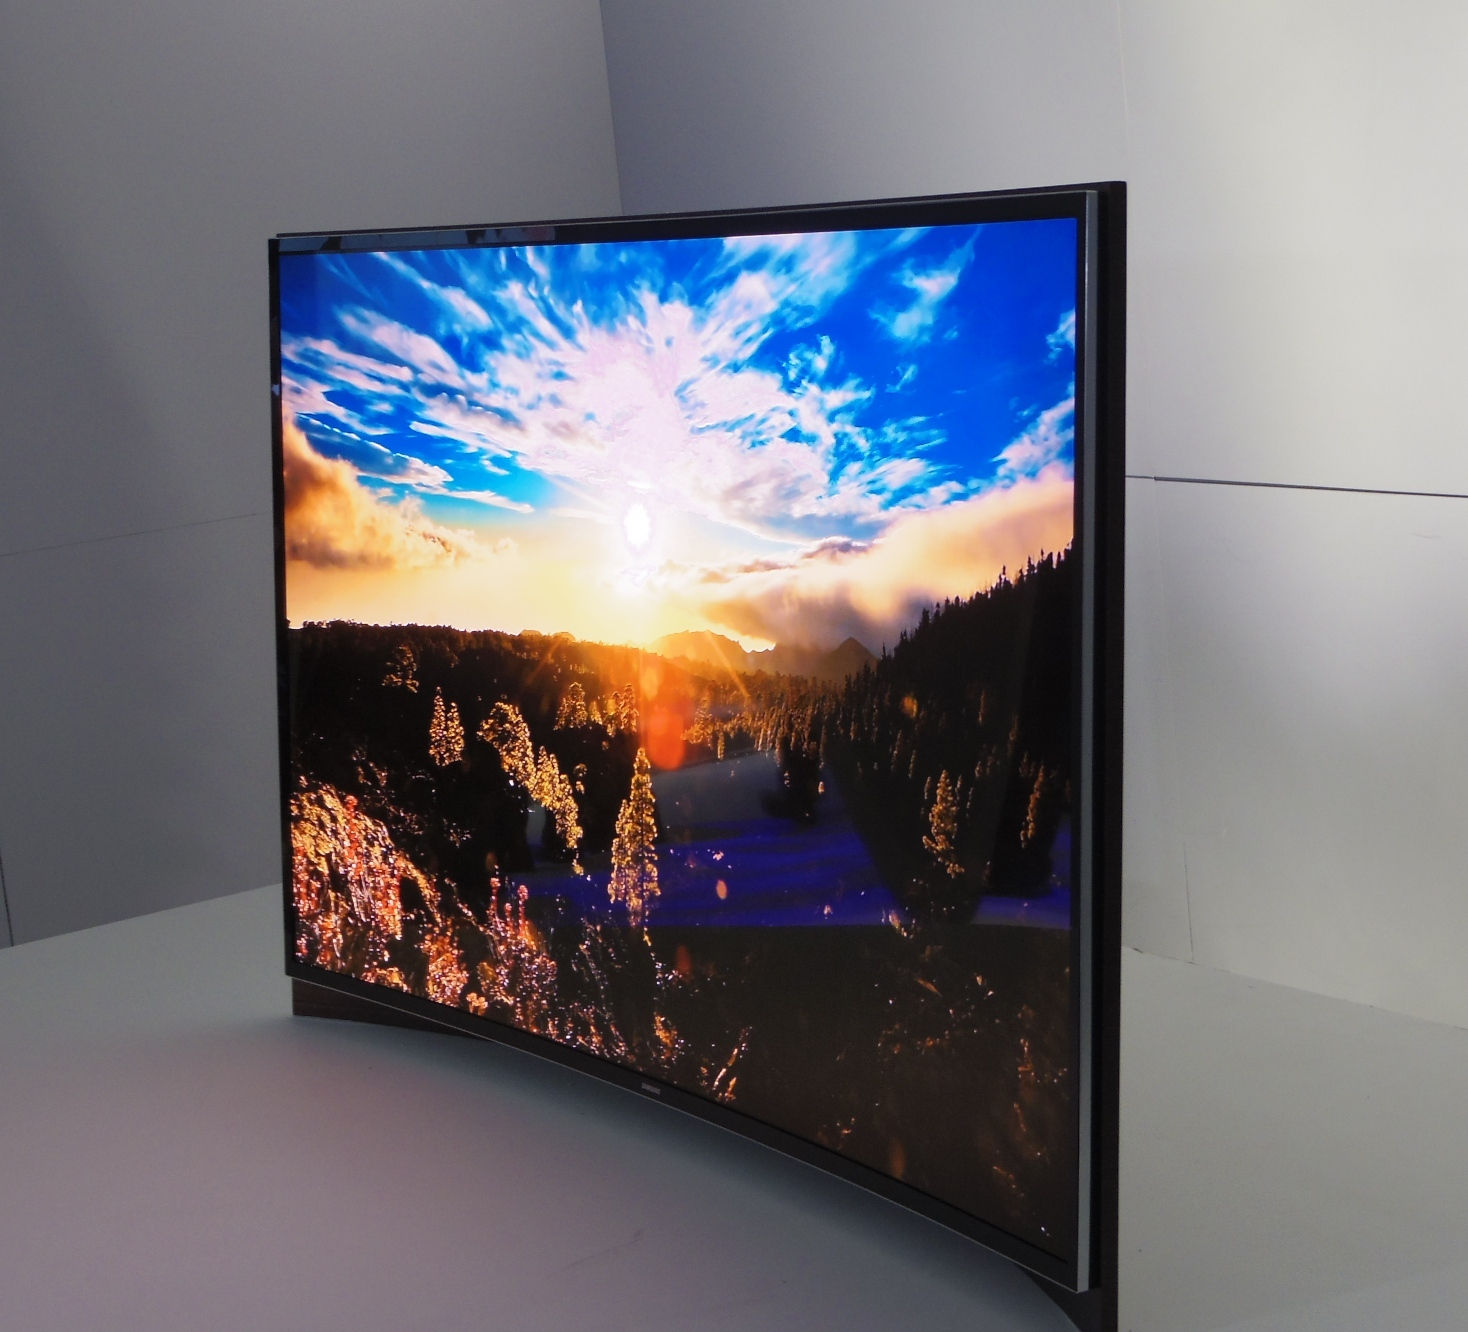 oled tv verst ndlich erkl rt oled tv testcenter. Black Bedroom Furniture Sets. Home Design Ideas